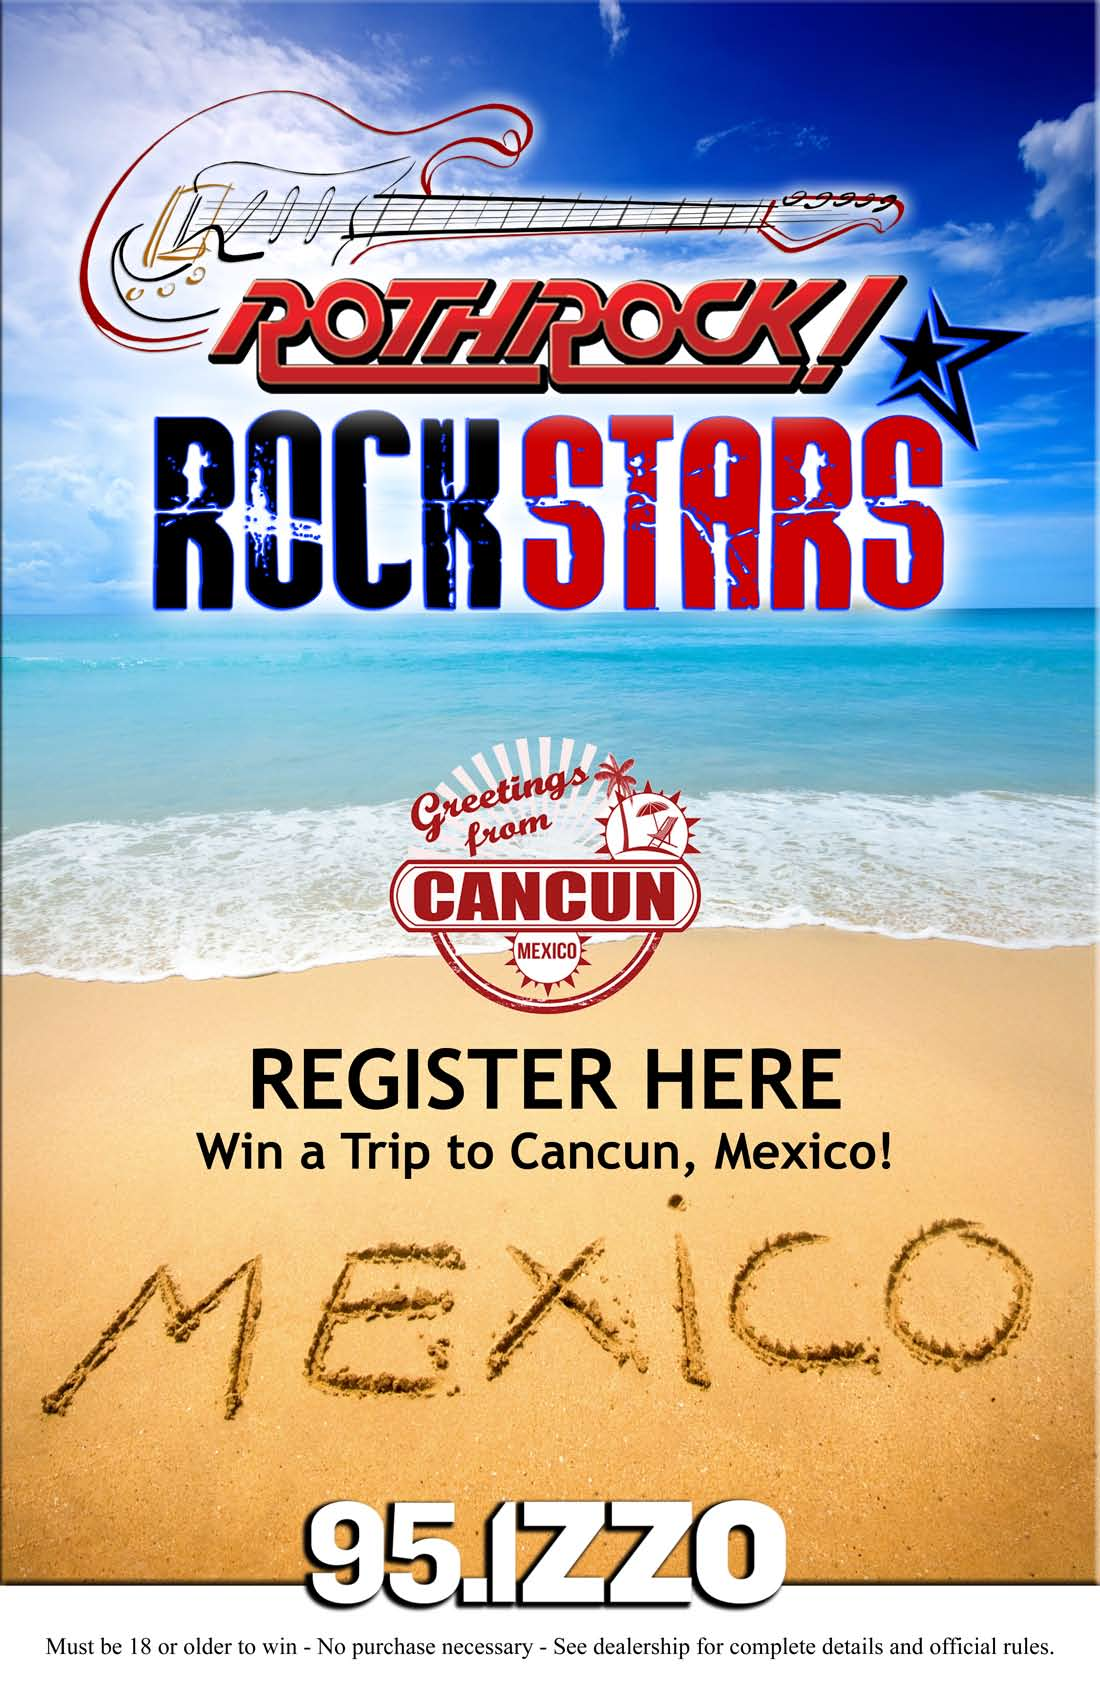 Win A Trip To Mexico - Rothrock CDJR - Allentown, PA